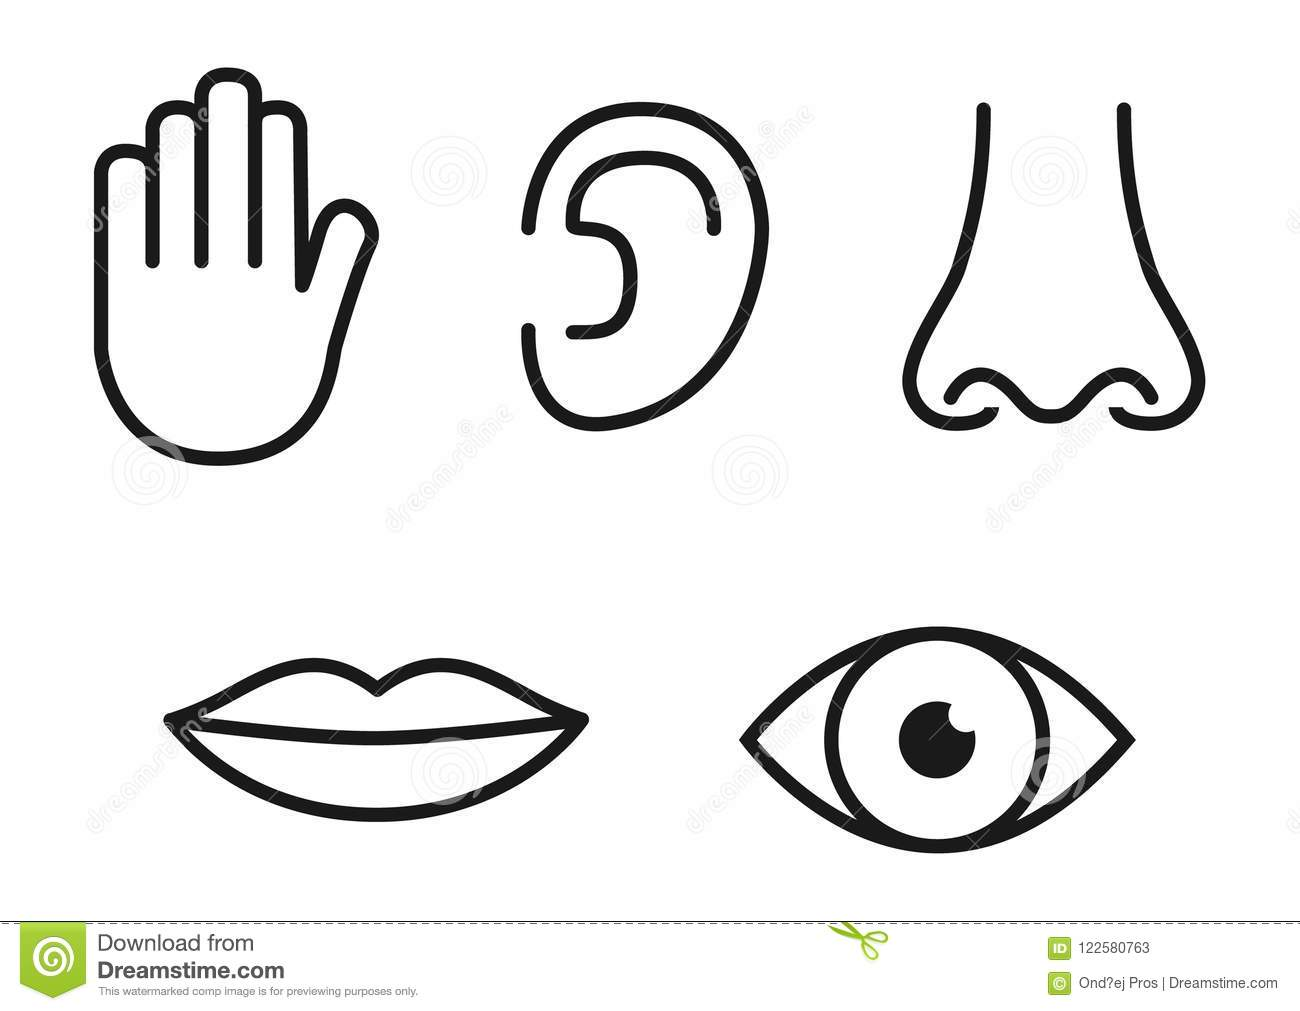 Outline Icon Set Of Five Human Senses: Vision Eye, Smell